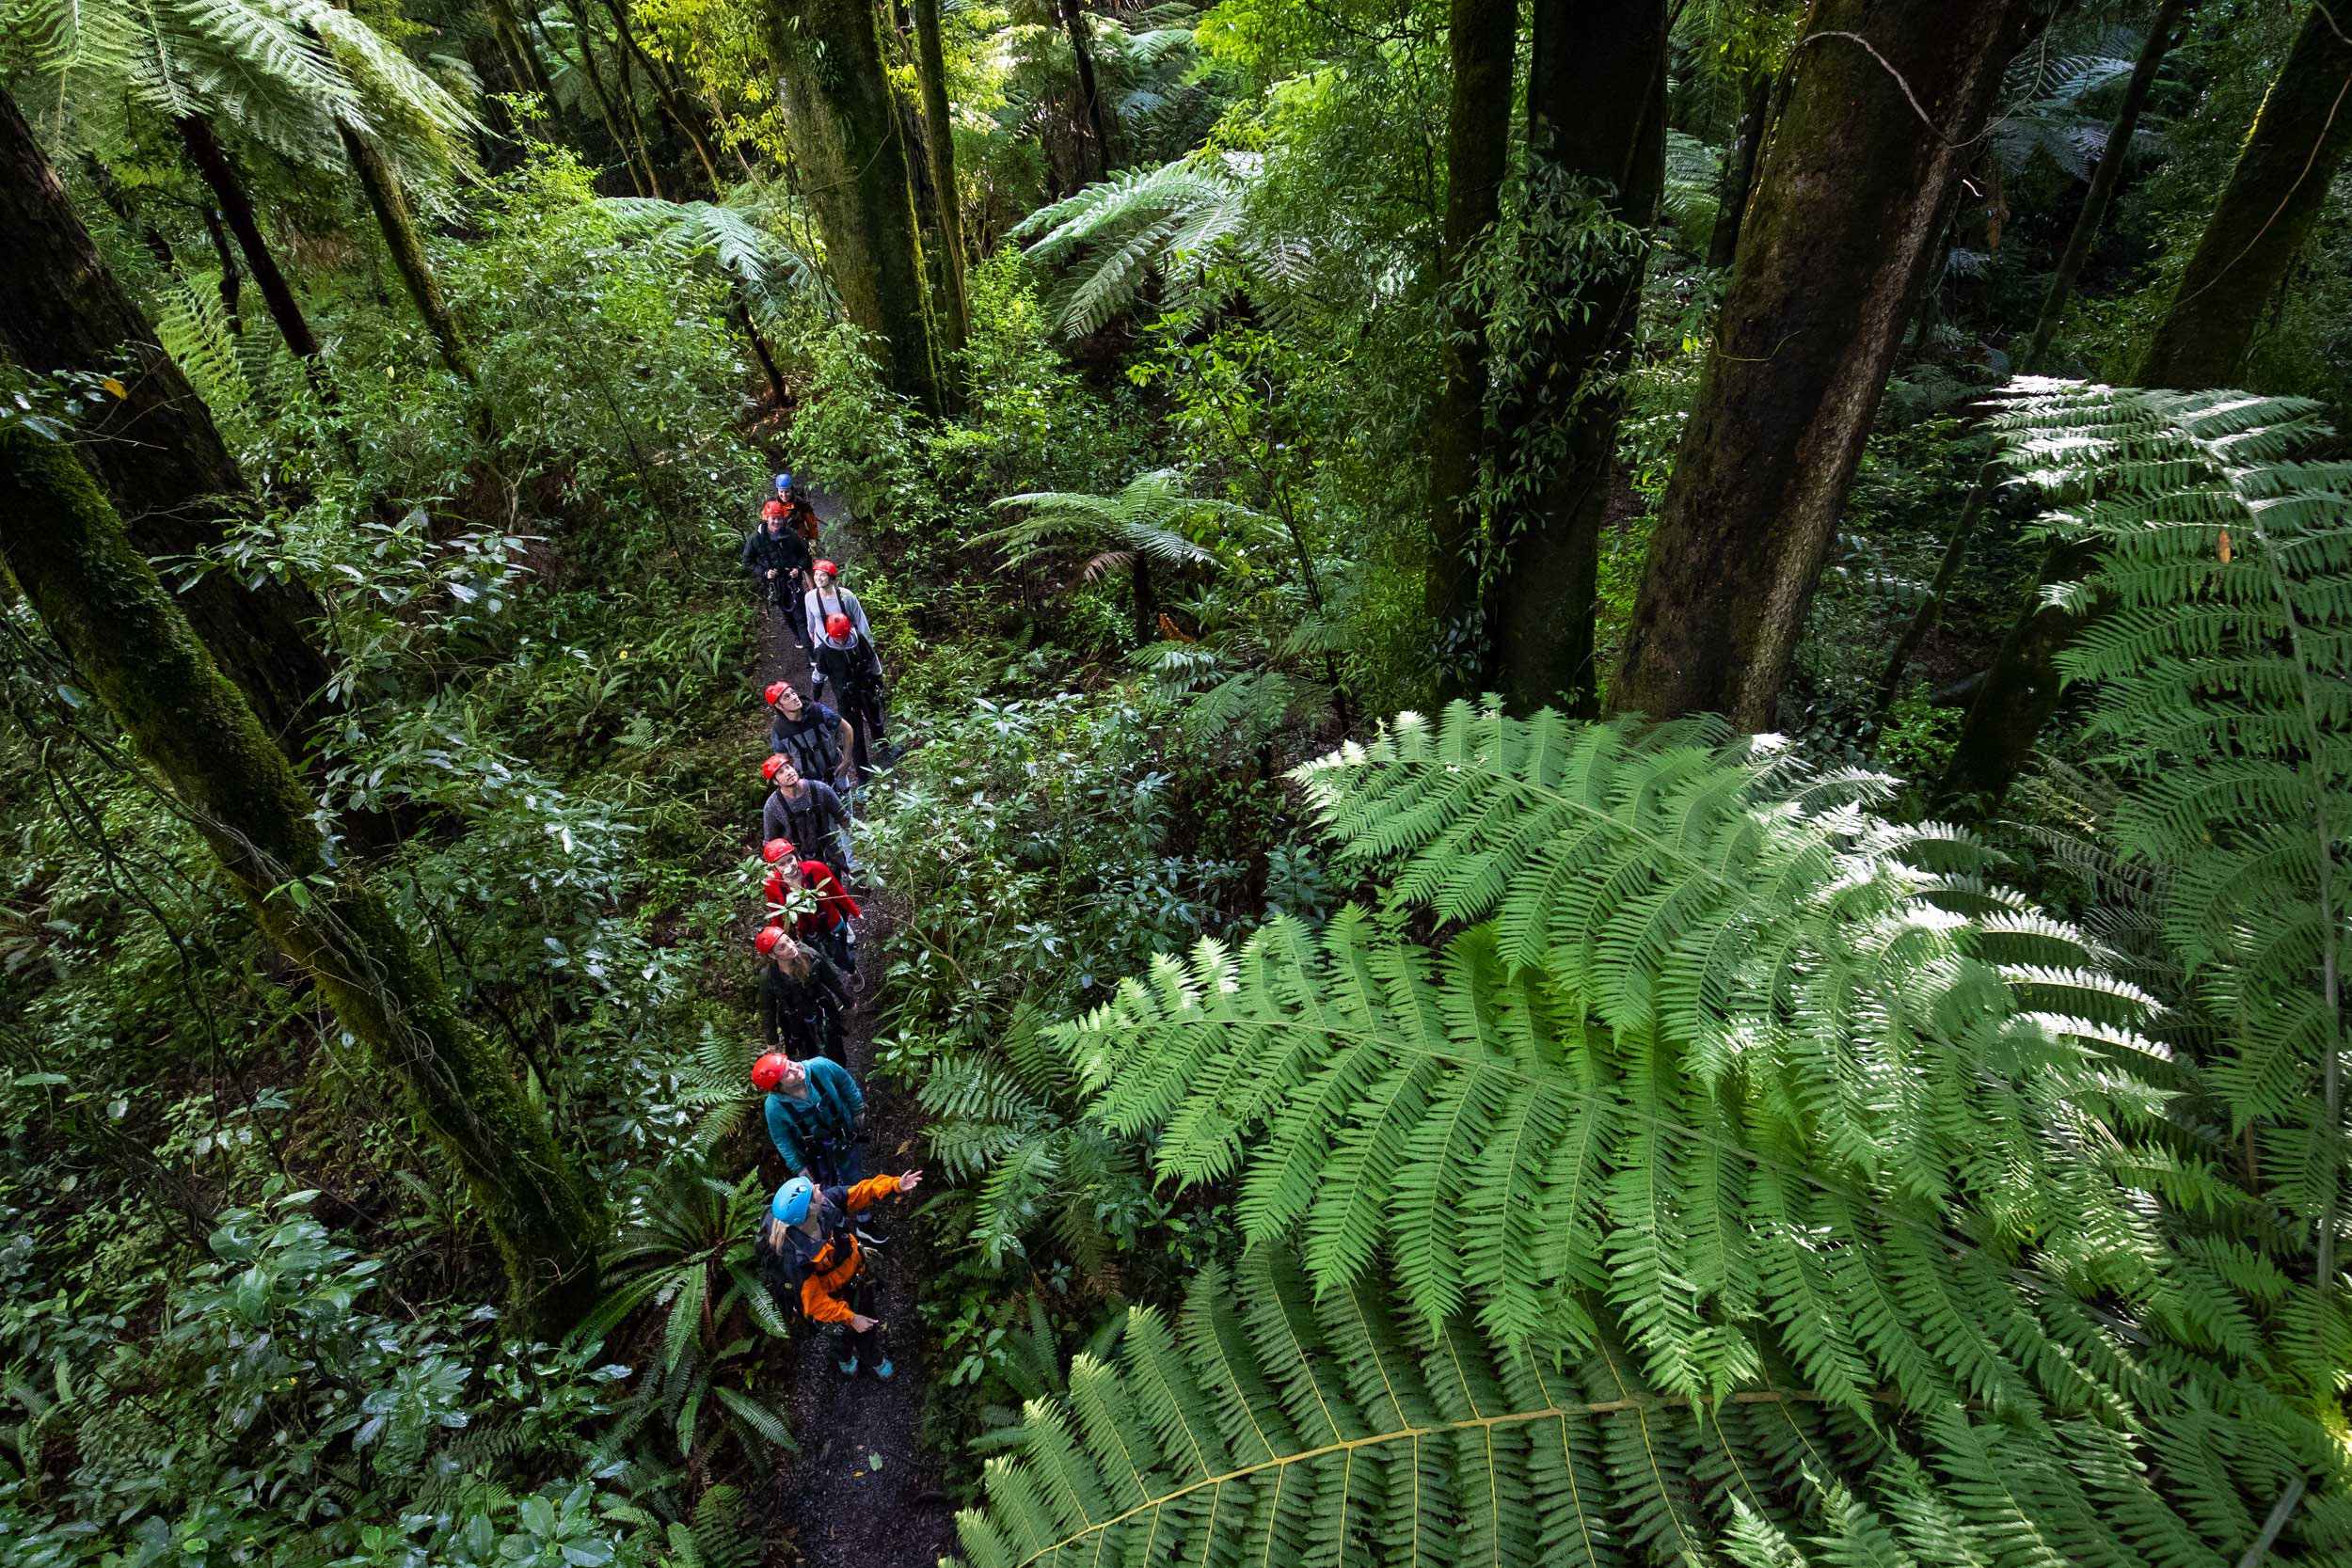 Group of people walking single file through native forest, Rotorua, New Zealand